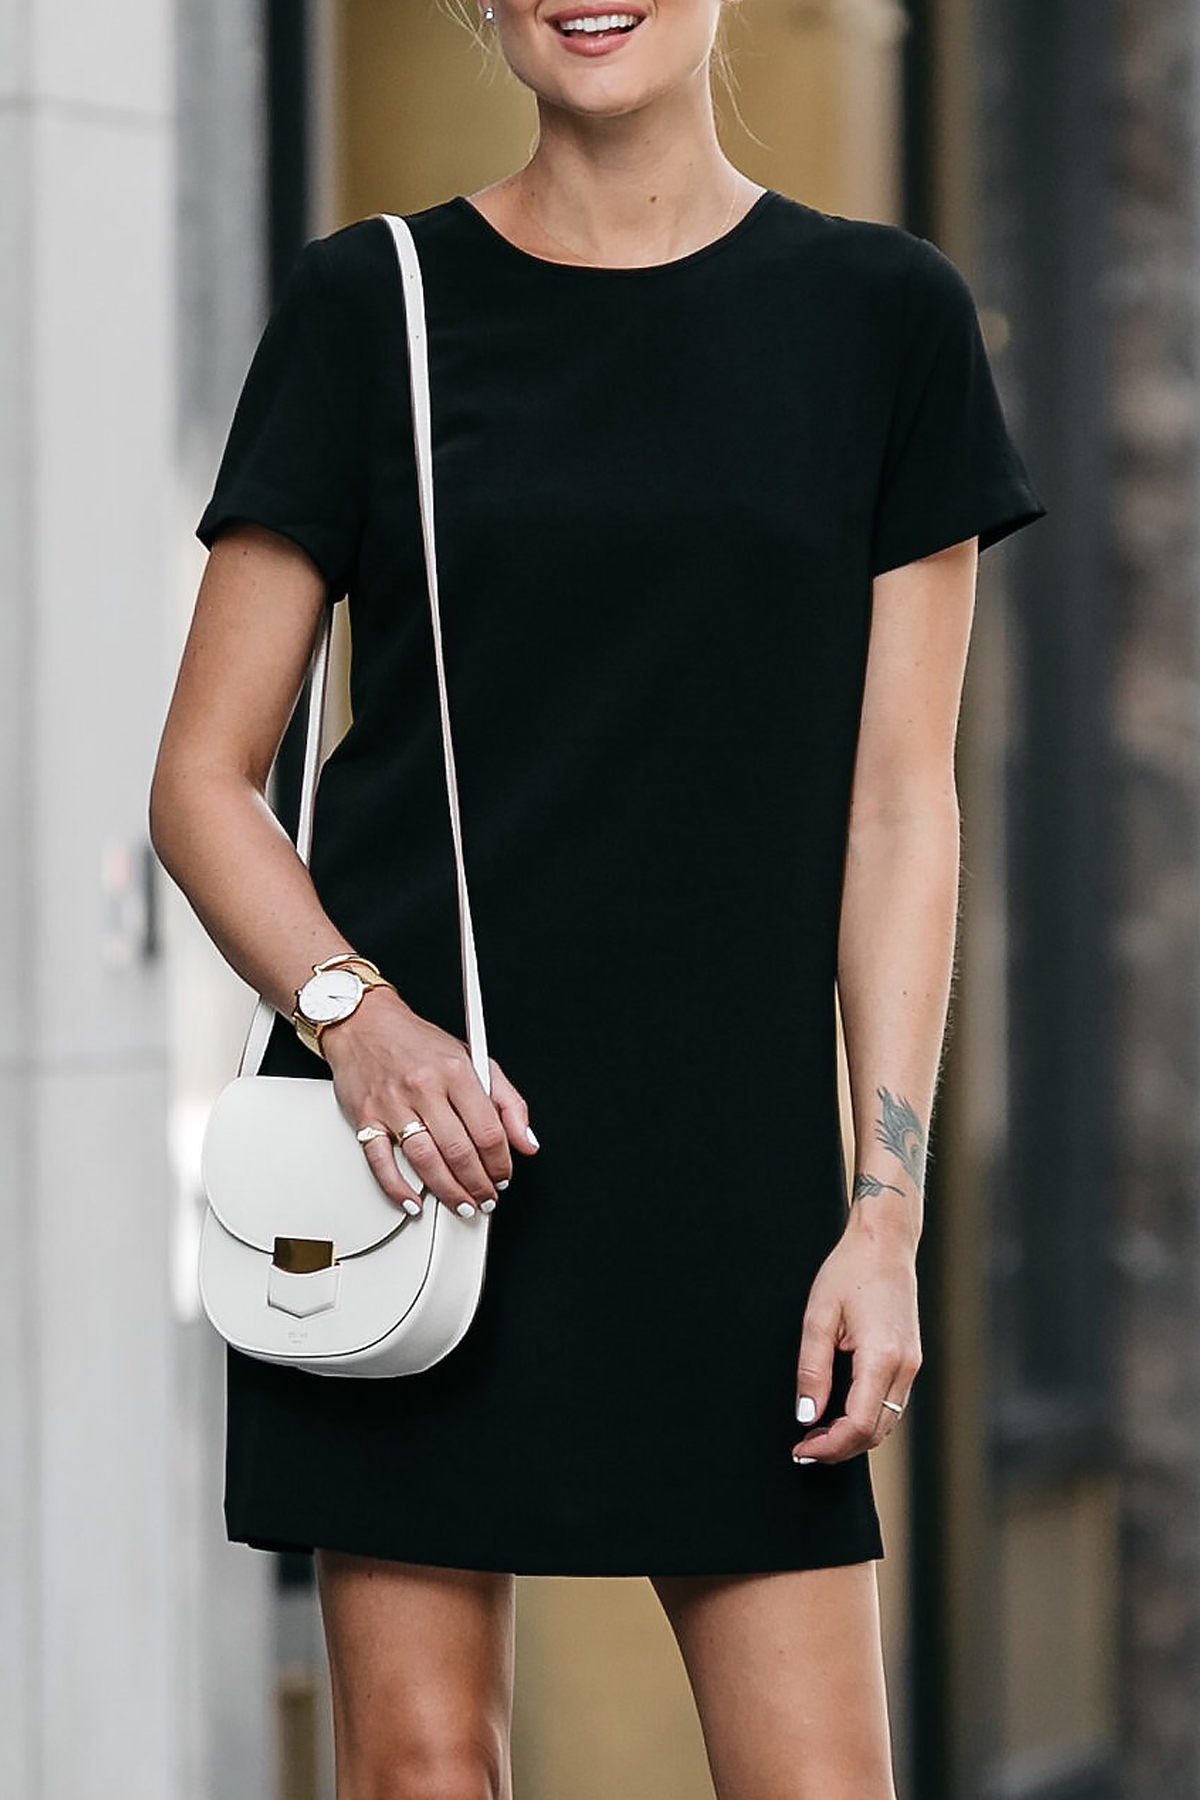 Nordstrom Black Shift Dress Outfit Celine White Trotteur Handbag Fashion Jackson Dallas Blogger Fashion Blogger Street Style